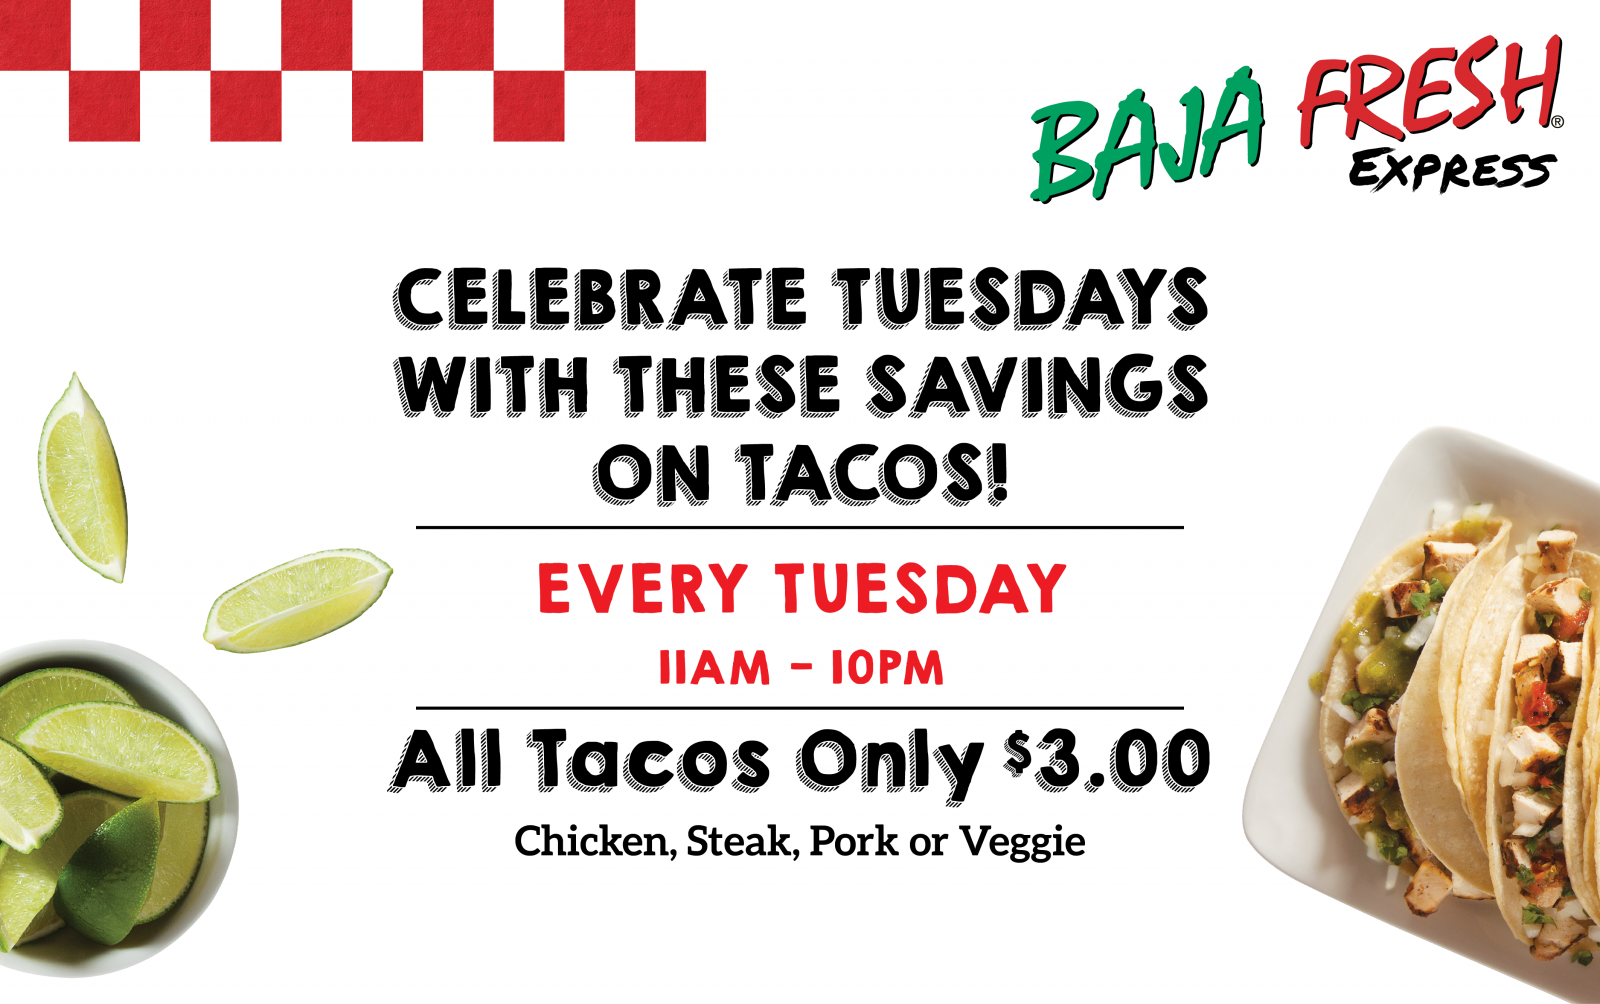 Celebrate Tuesdays with $3.00 Tacos!